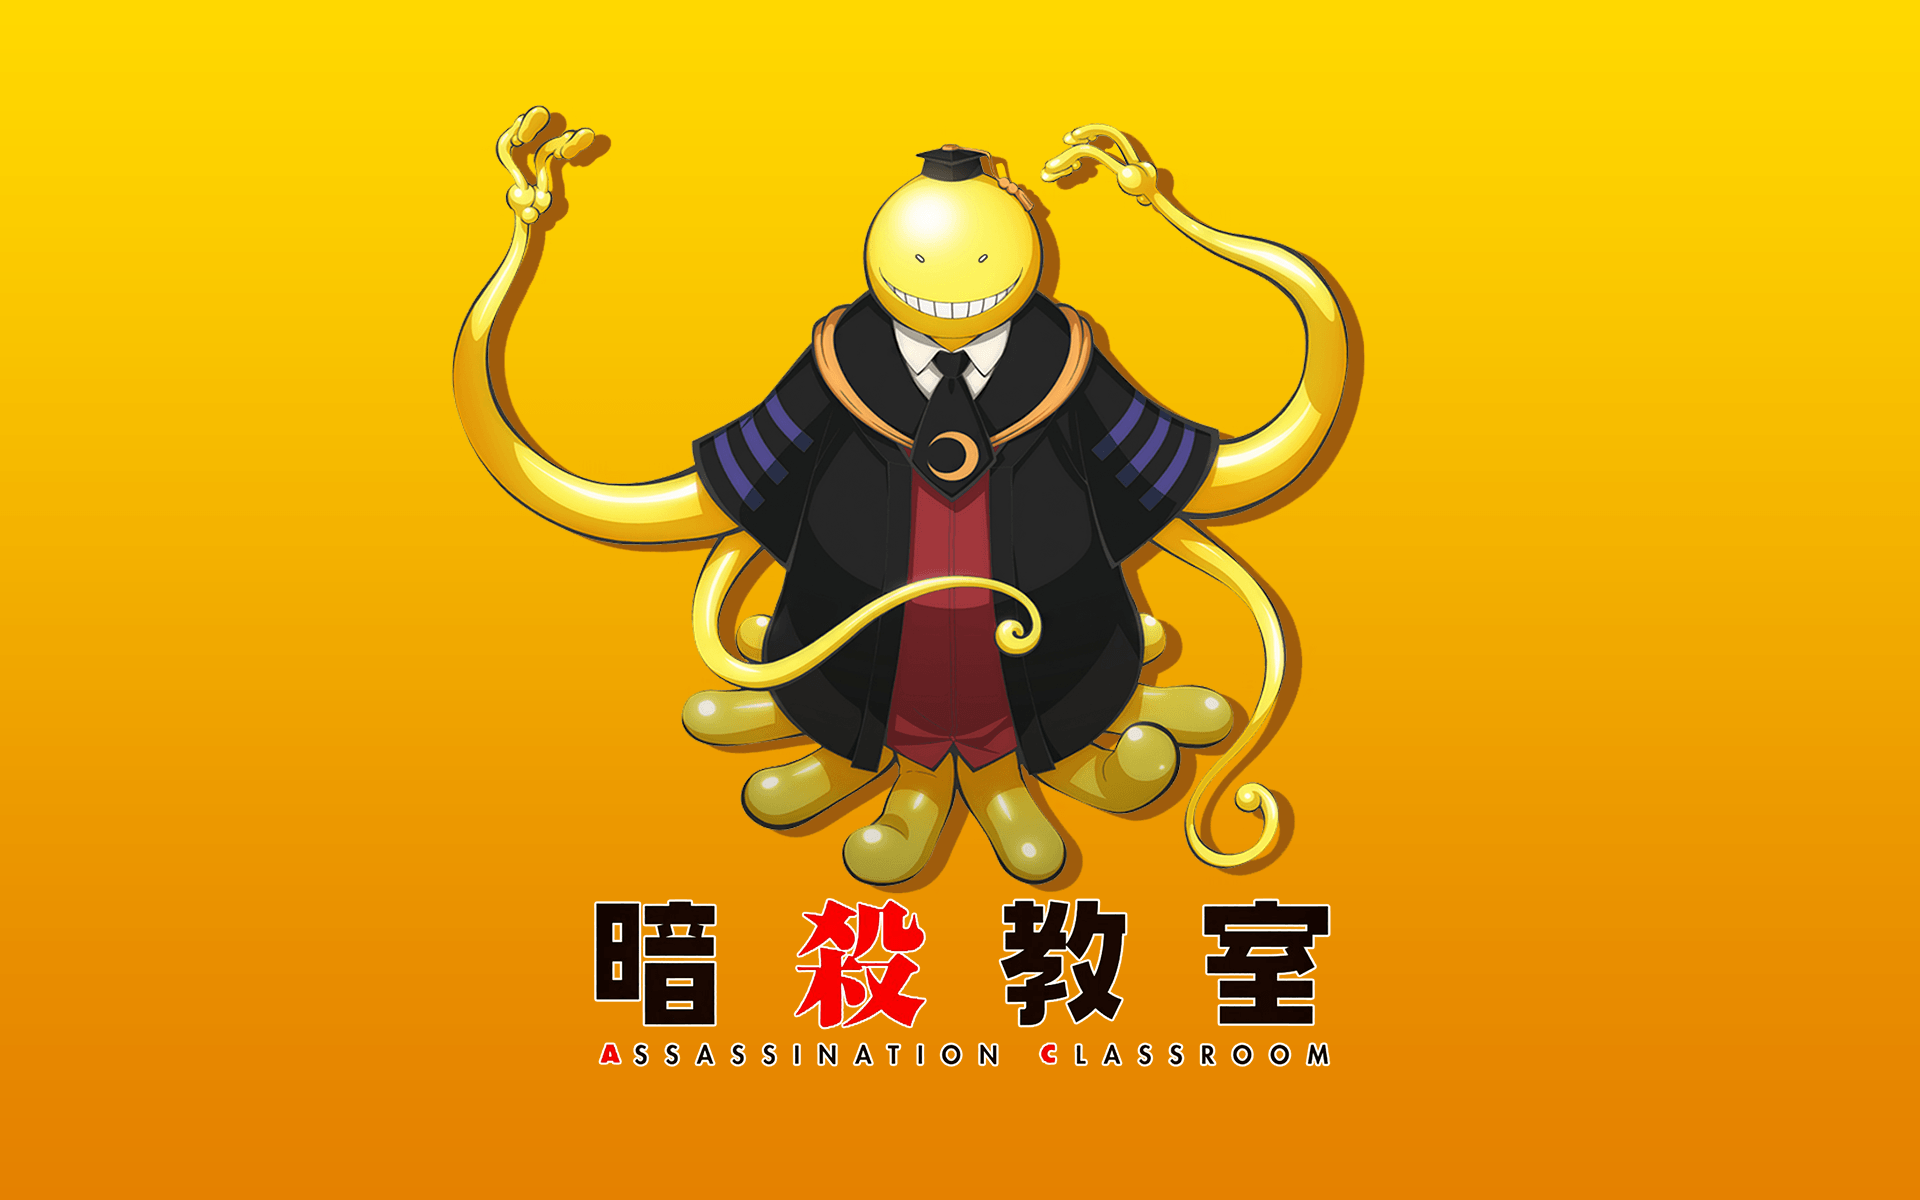 Assassination Classroom Full HD Wallpapers and Backgrounds